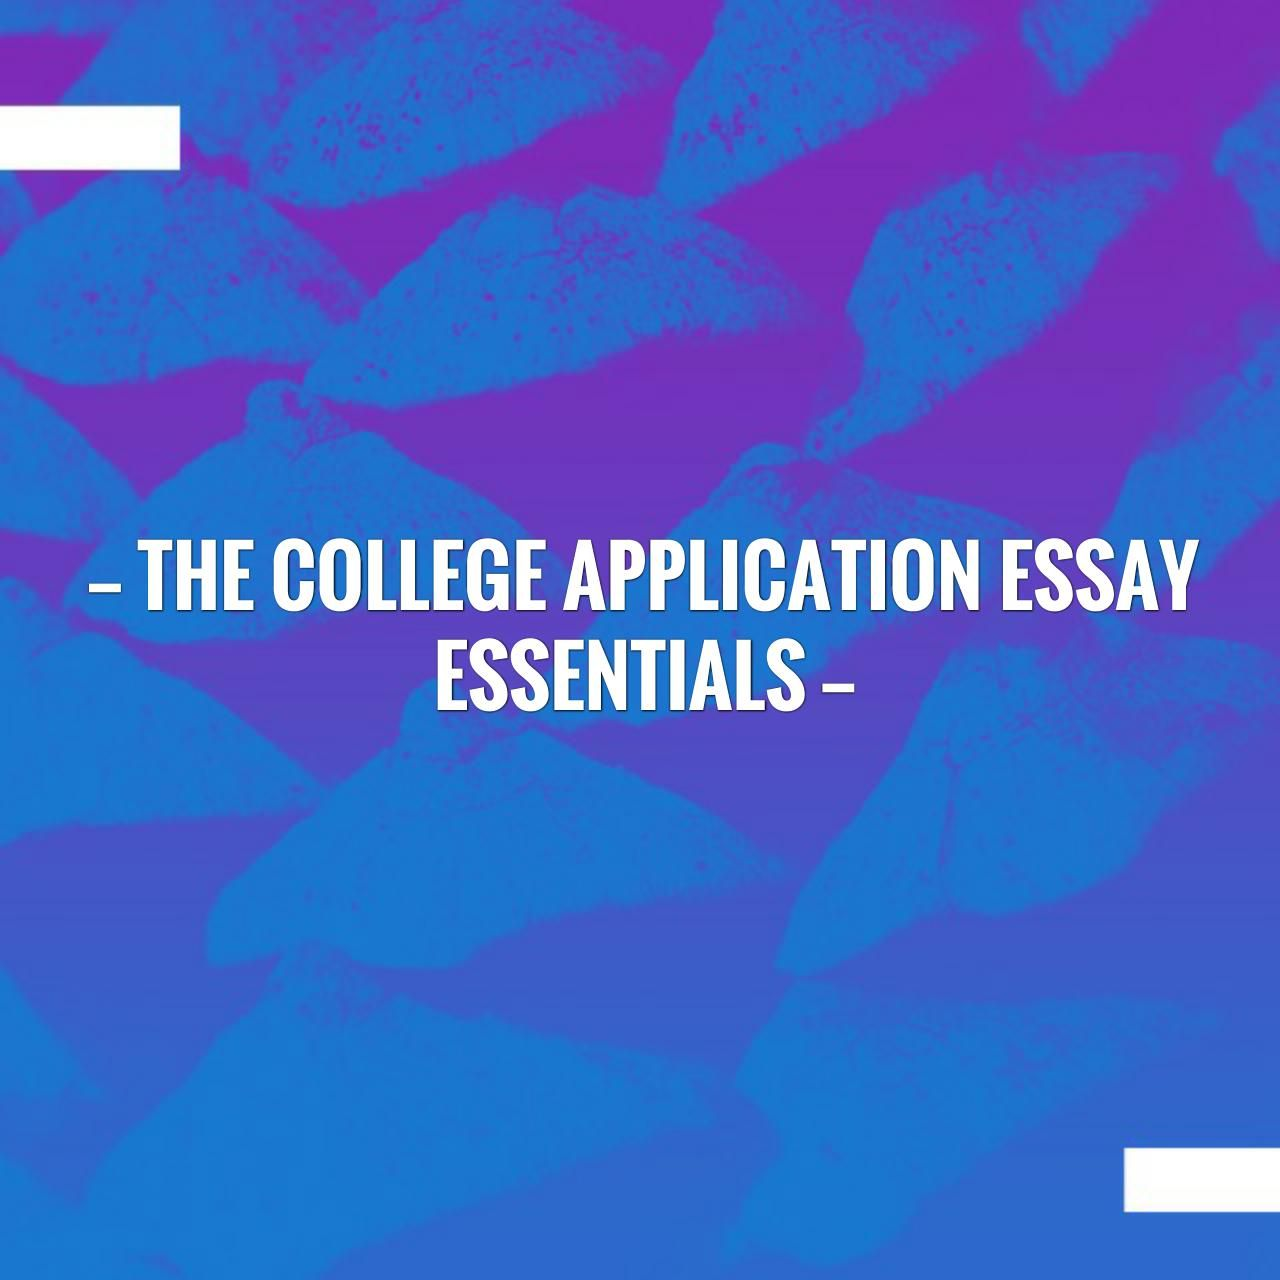 Cheap college essay writer site for masters